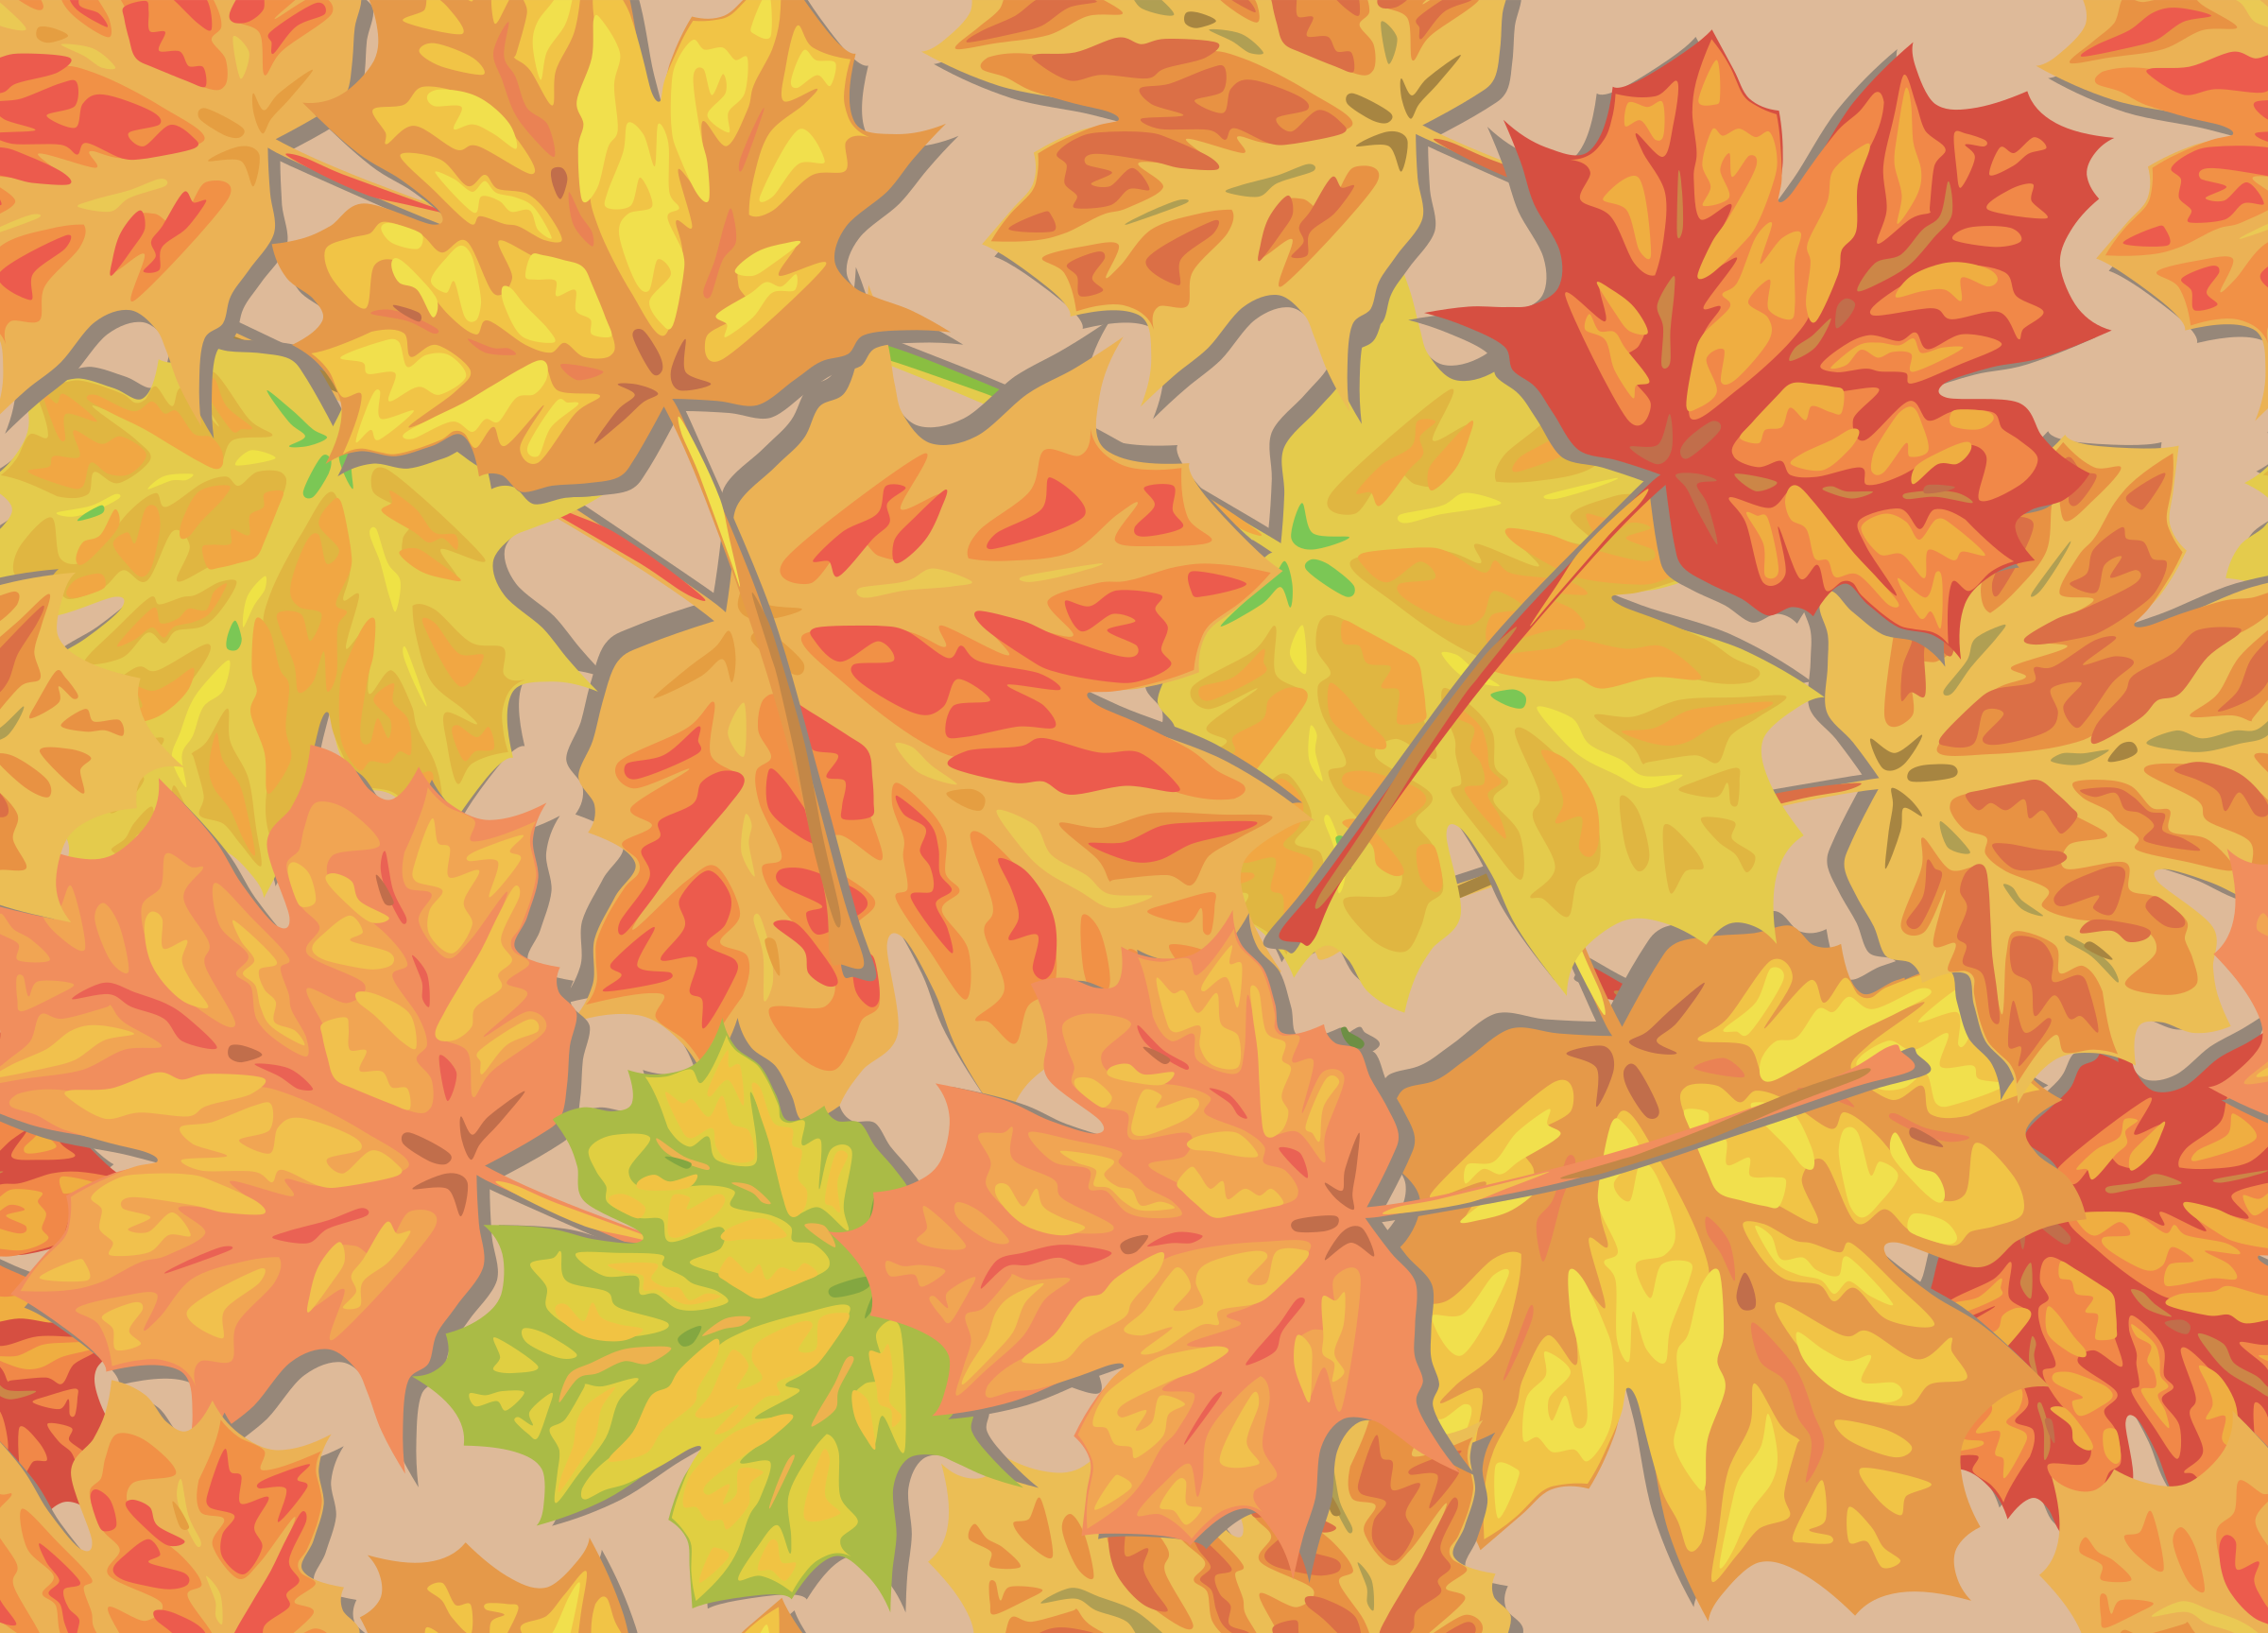 Fall Leaves by eady